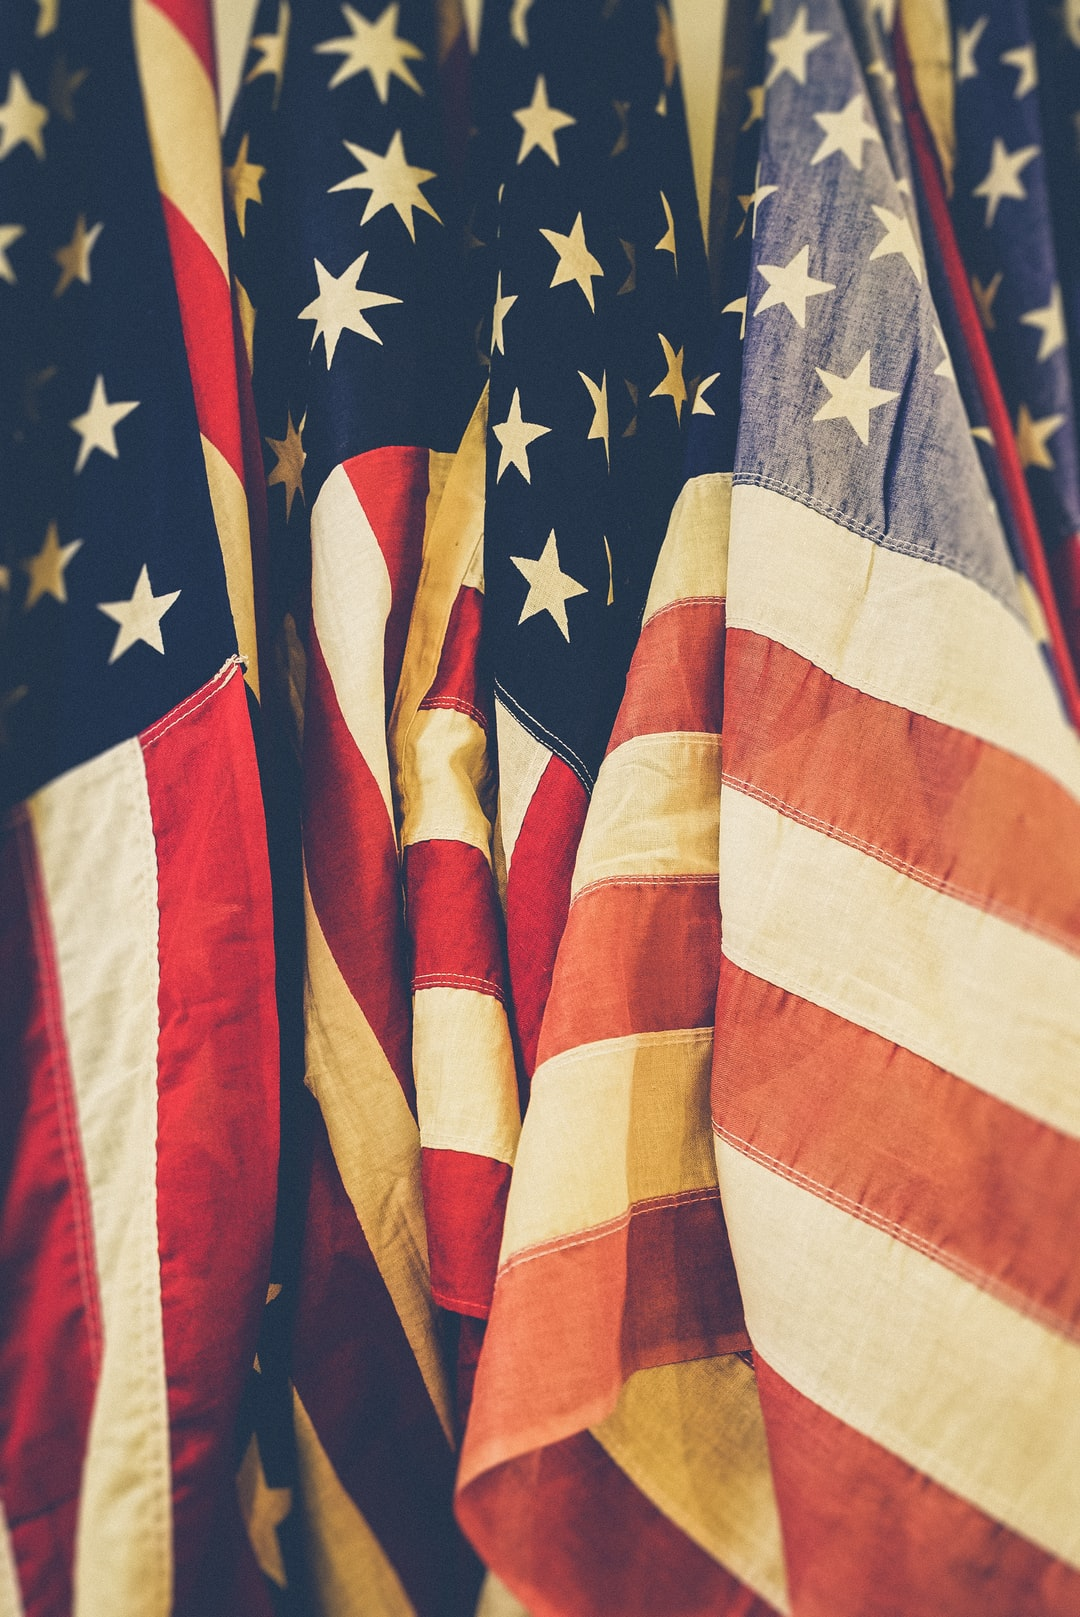 Faded American flags